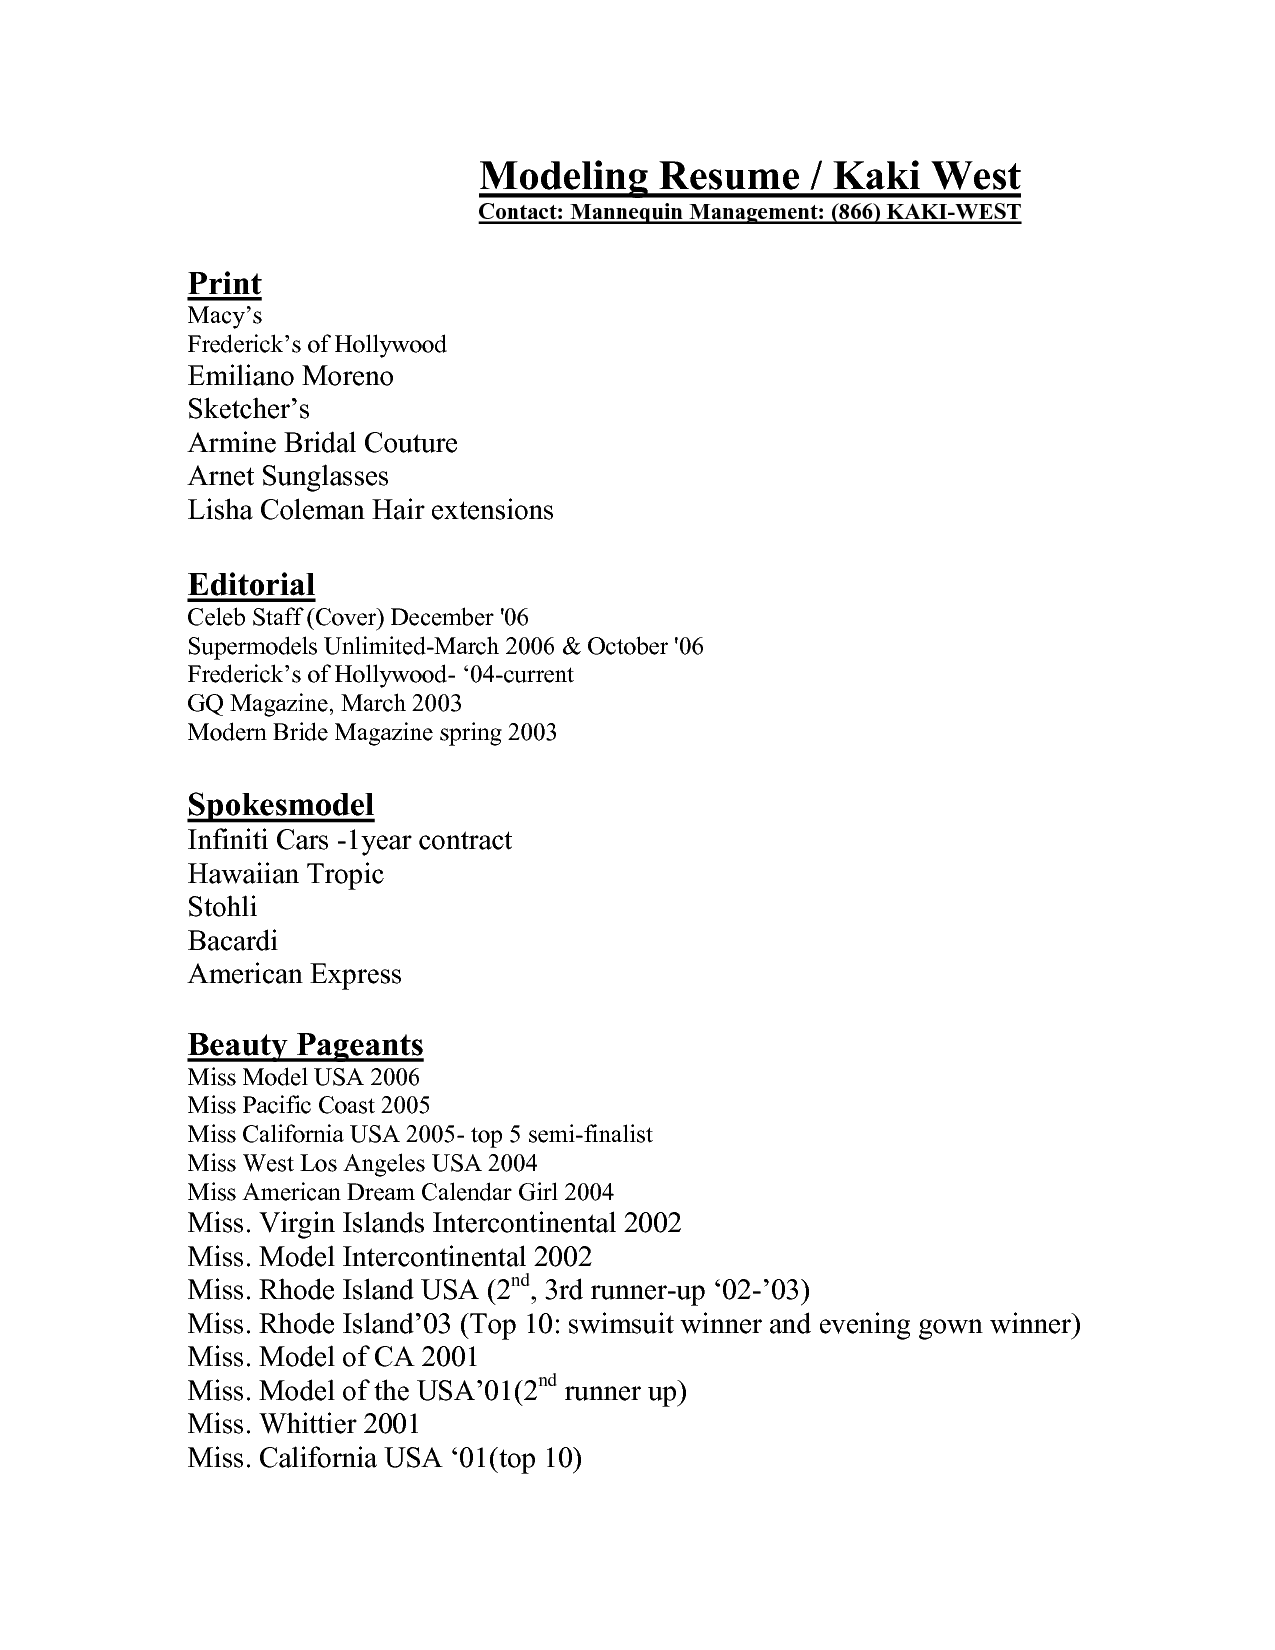 Model Resume Examples Example Of Model Resume As Resume Profile